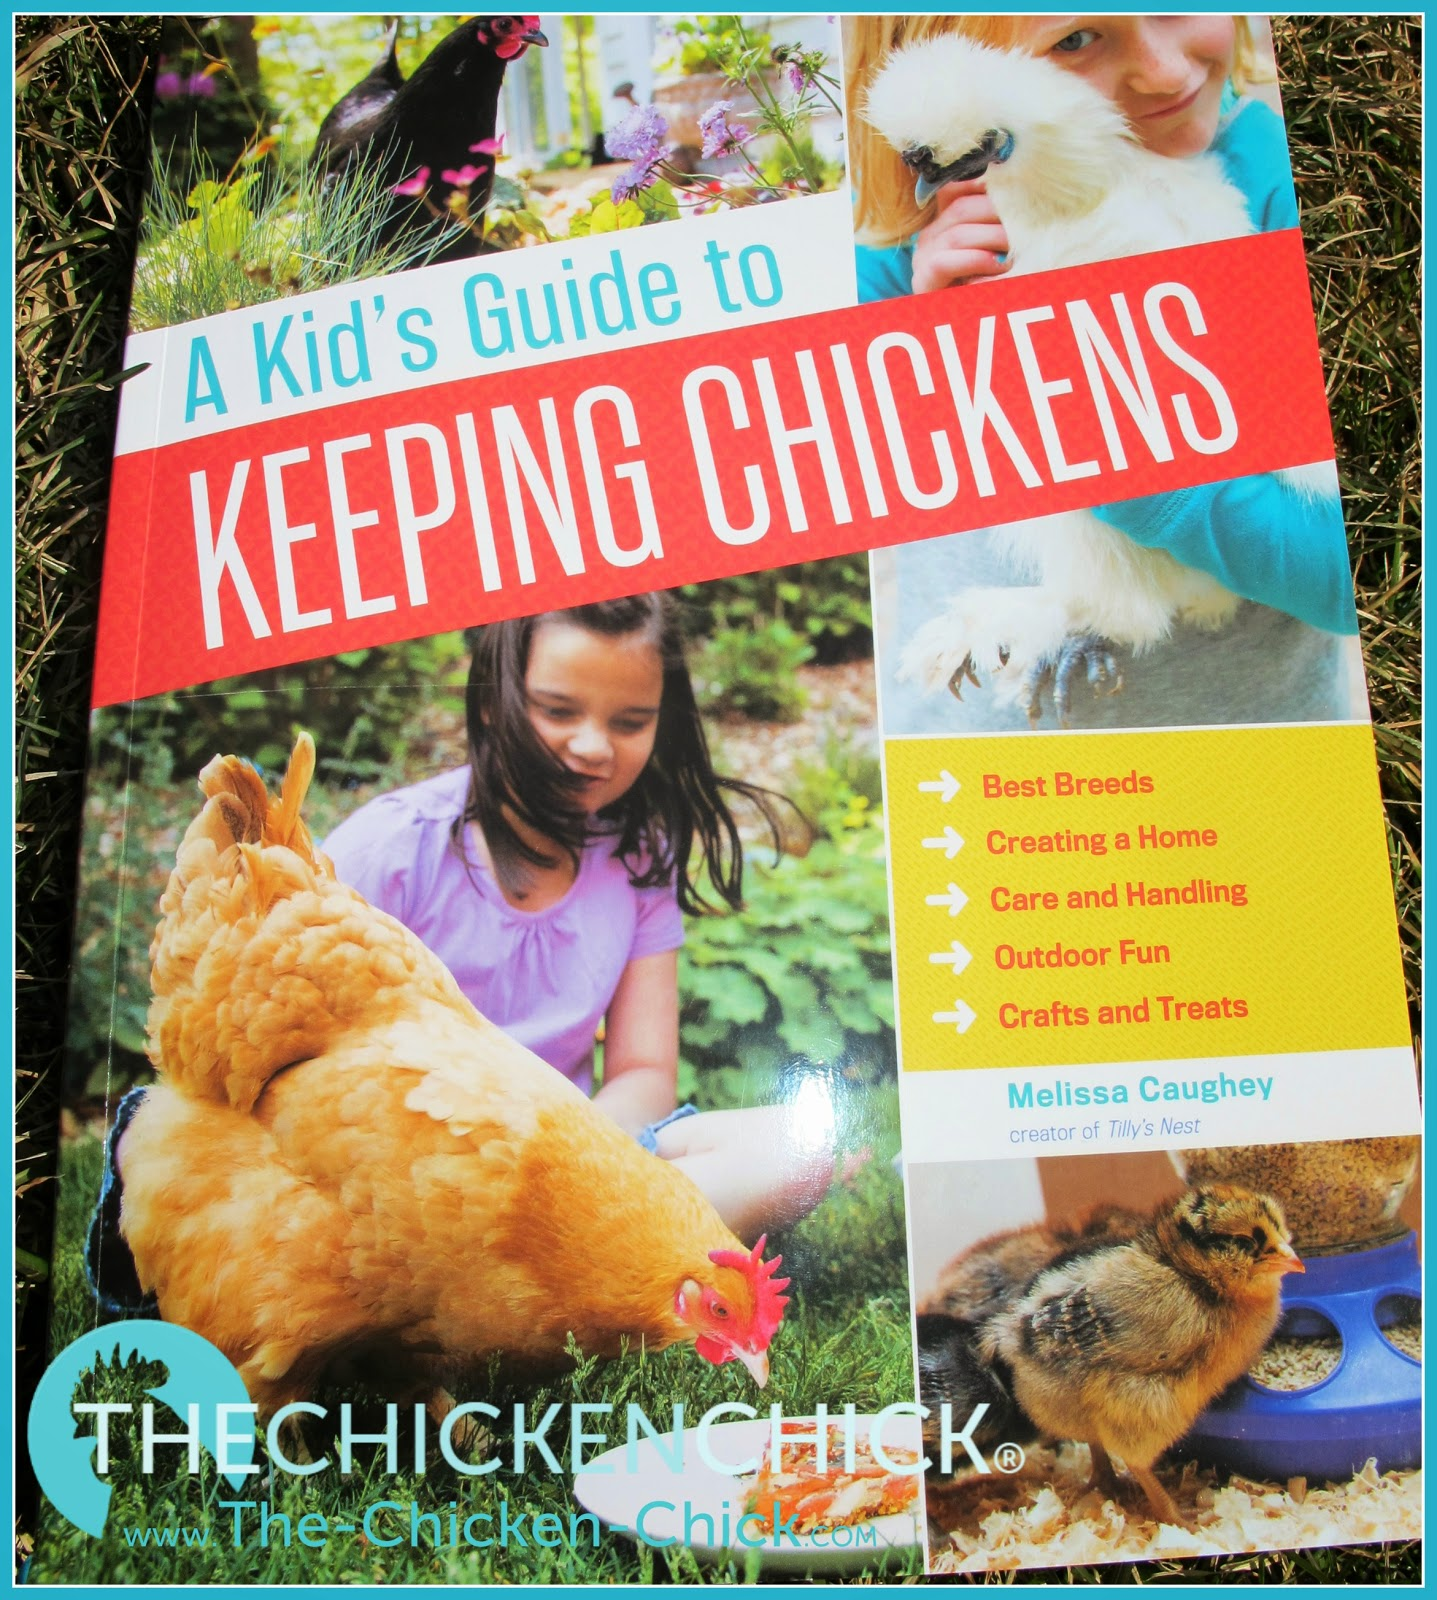 A kid's review of A Kid's Guide to Keeping Chickens